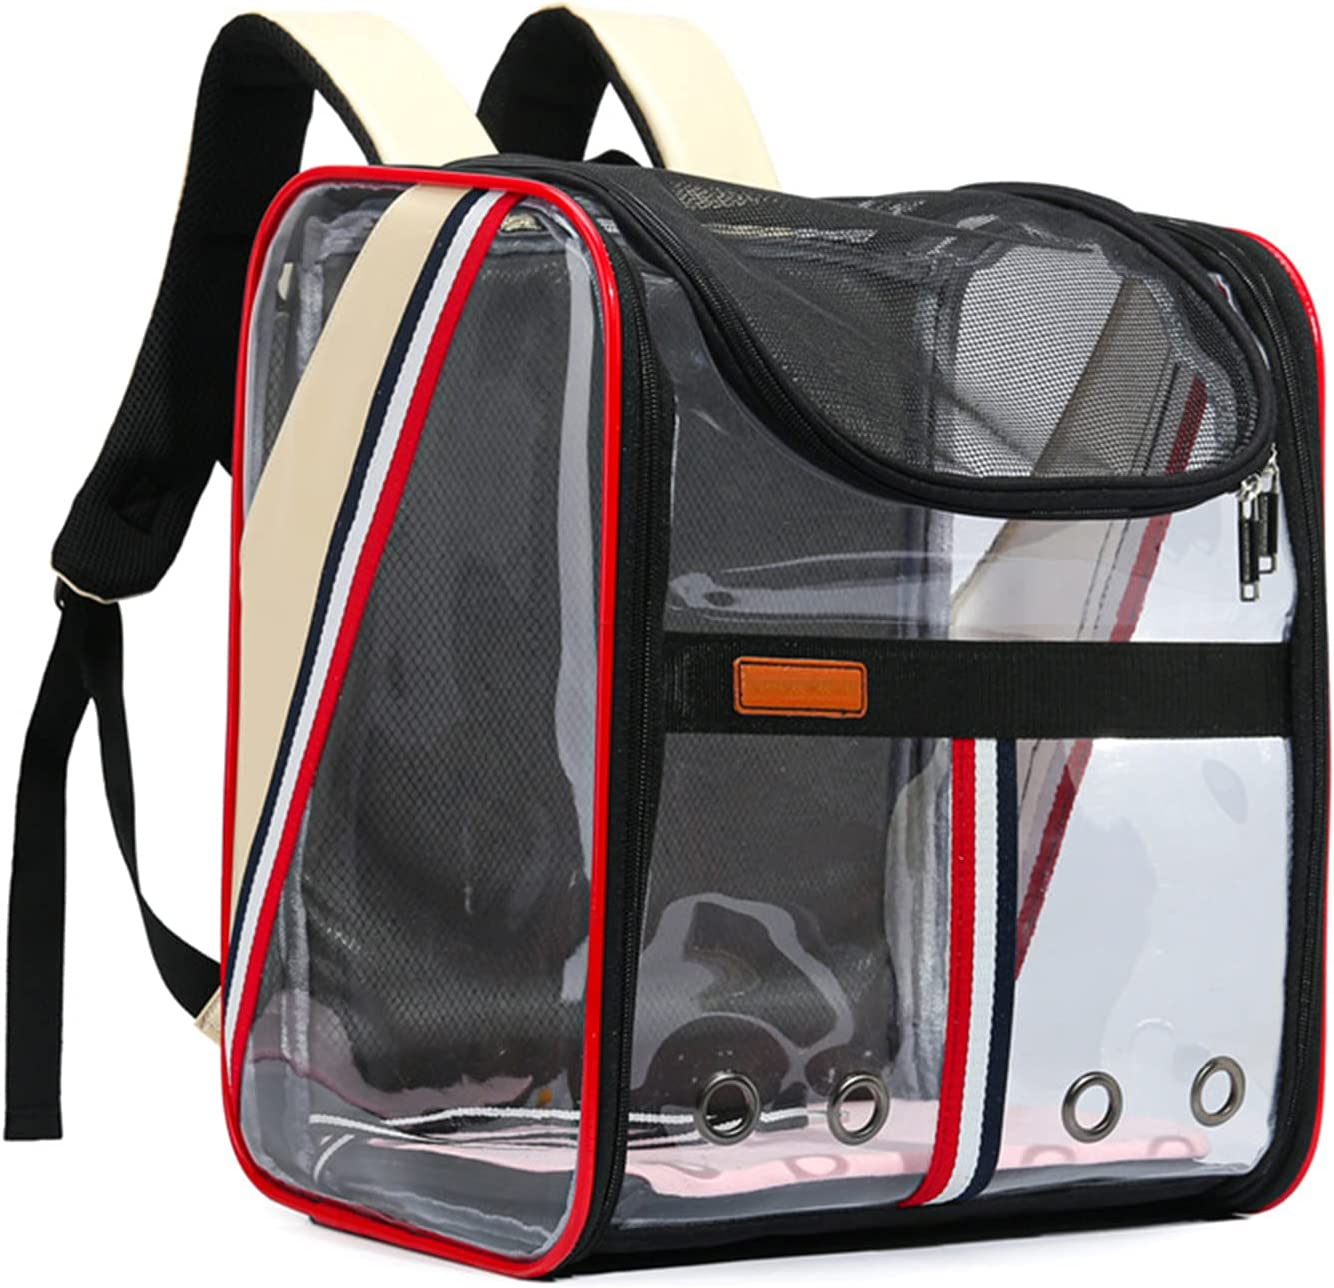 Soft Sided Pet Travel Foldable Limited time for free shipping Carrier Fully Trans Special sale item